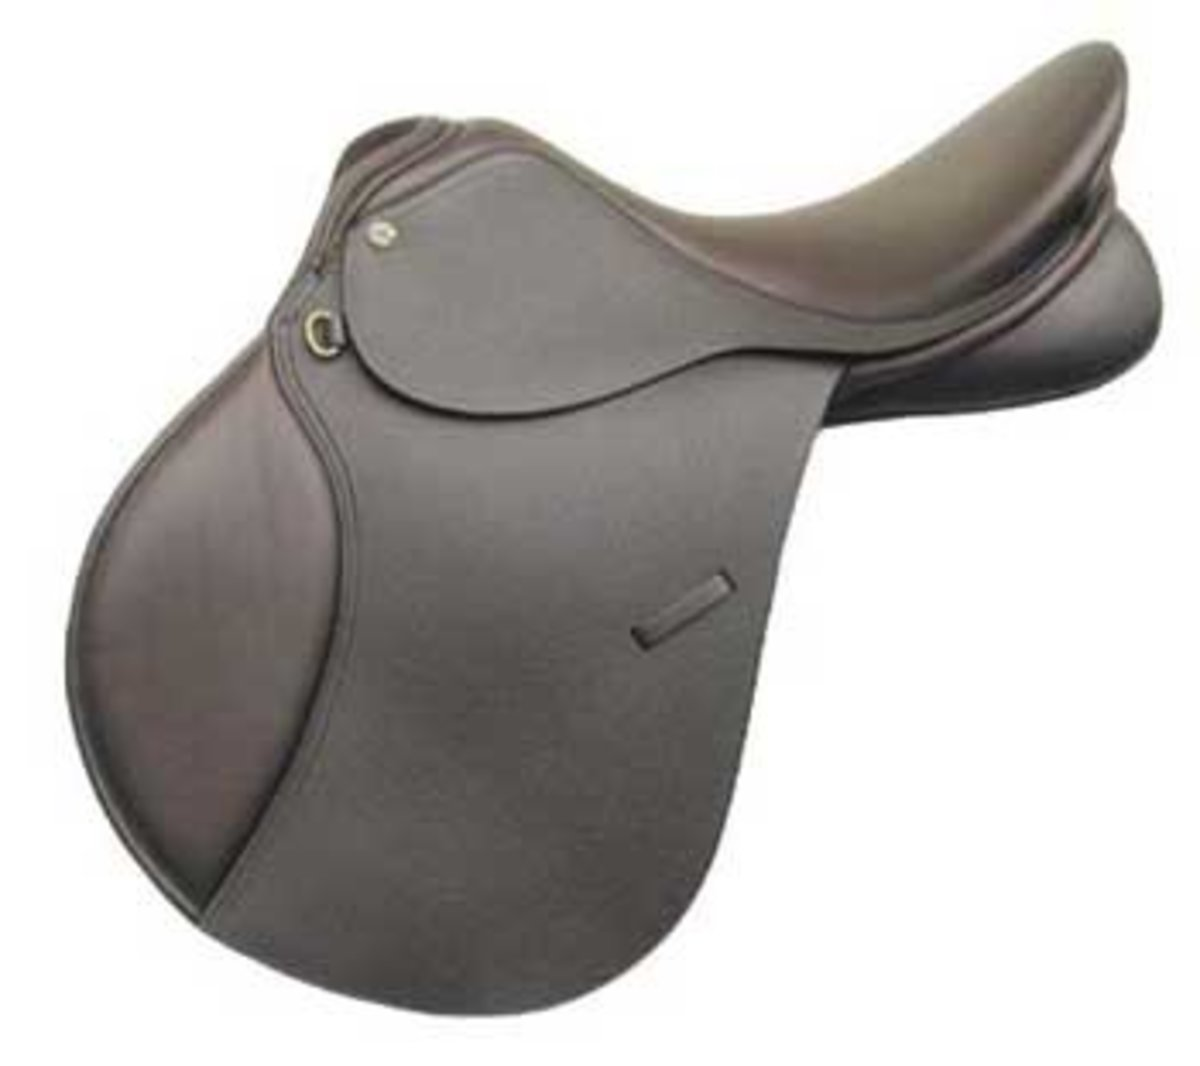 10 Different Types of Horse Riding Saddles